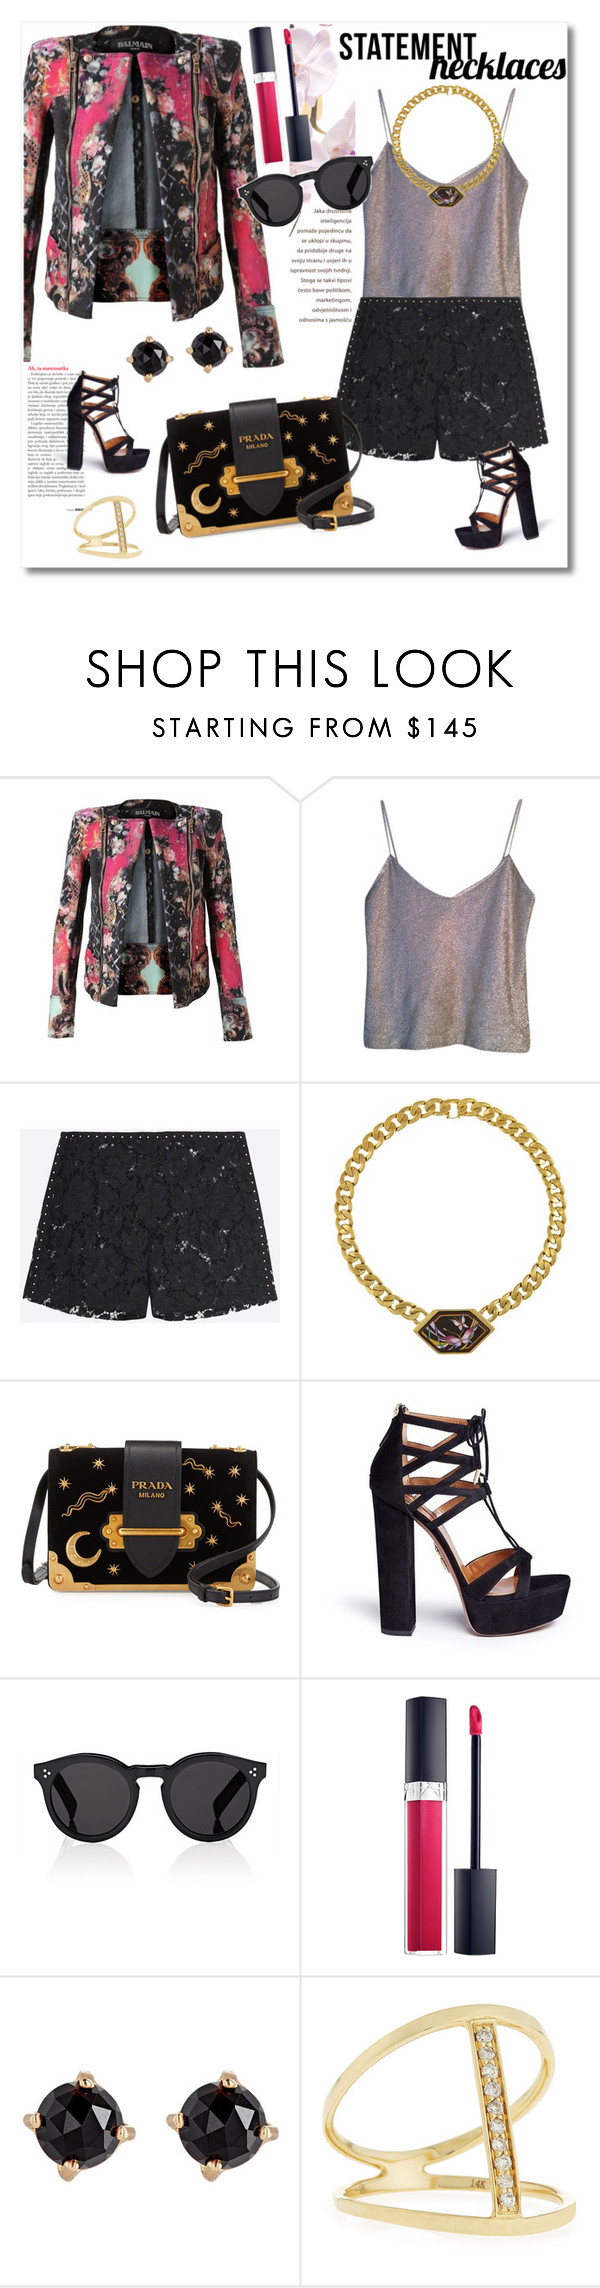 """Get the look"" by vkmd ❤ liked on Polyvore featuring Balmain, Narciso Rodriguez, Valentino, Prada, Aquazzura, Illesteva, Irene Neuwirth, Sydney Evan and statementnecklaces"